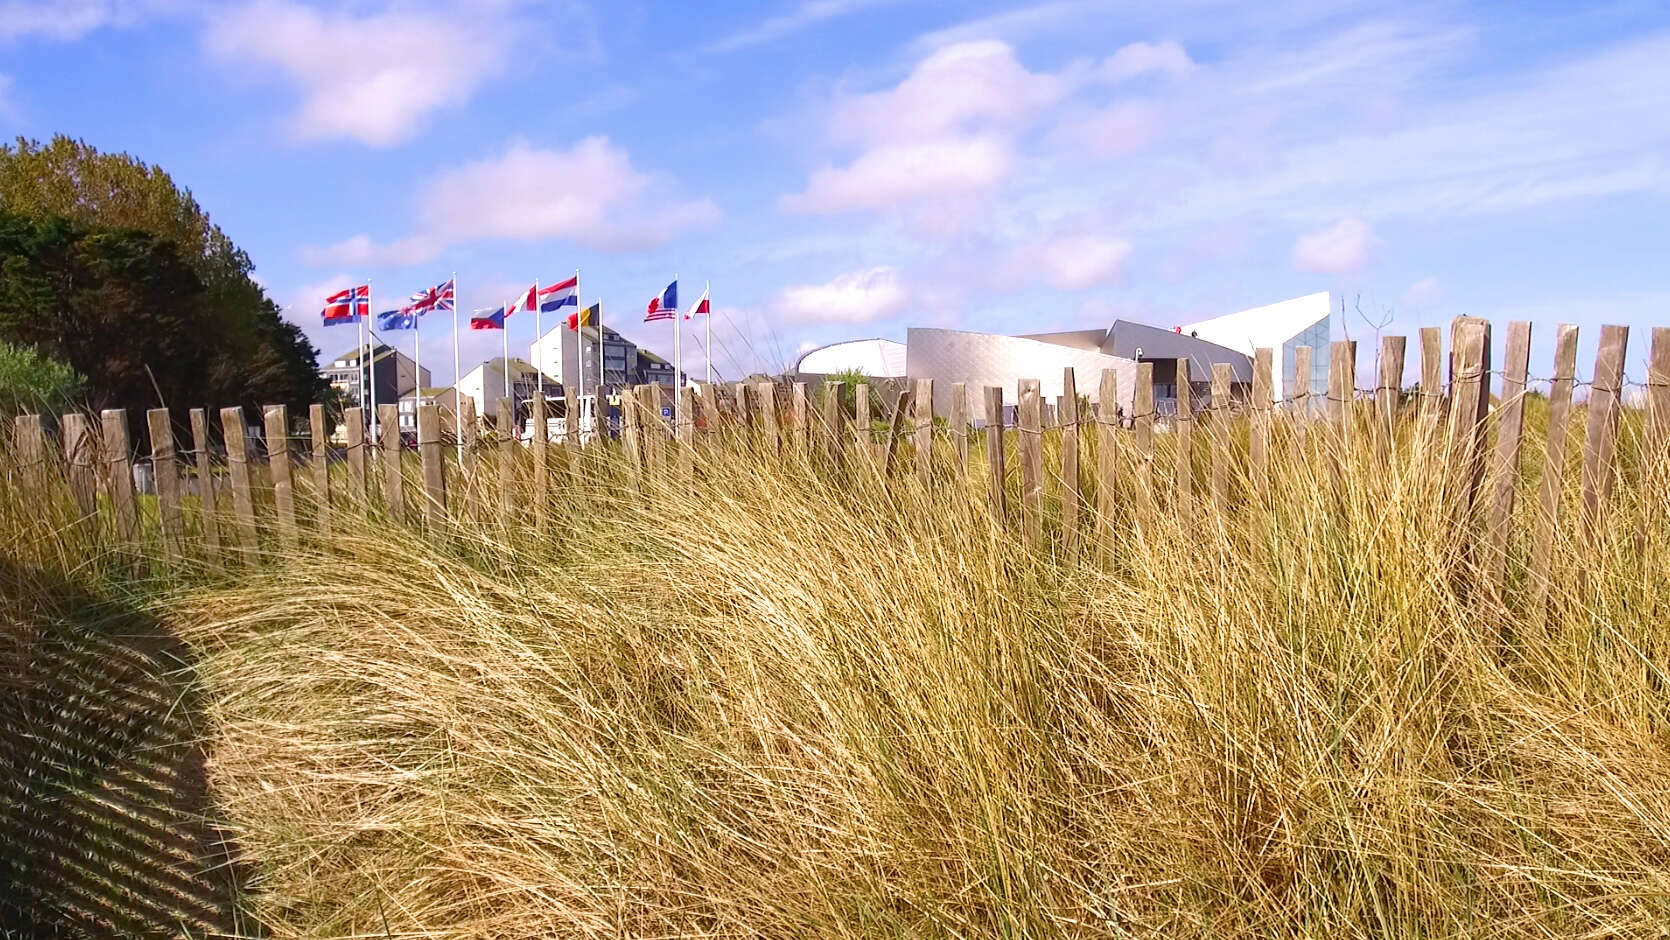 Save Hundreds, PLUS Free Air! Paris to Normandy and Our DDay Landing Beach on an Avalon River Cruise